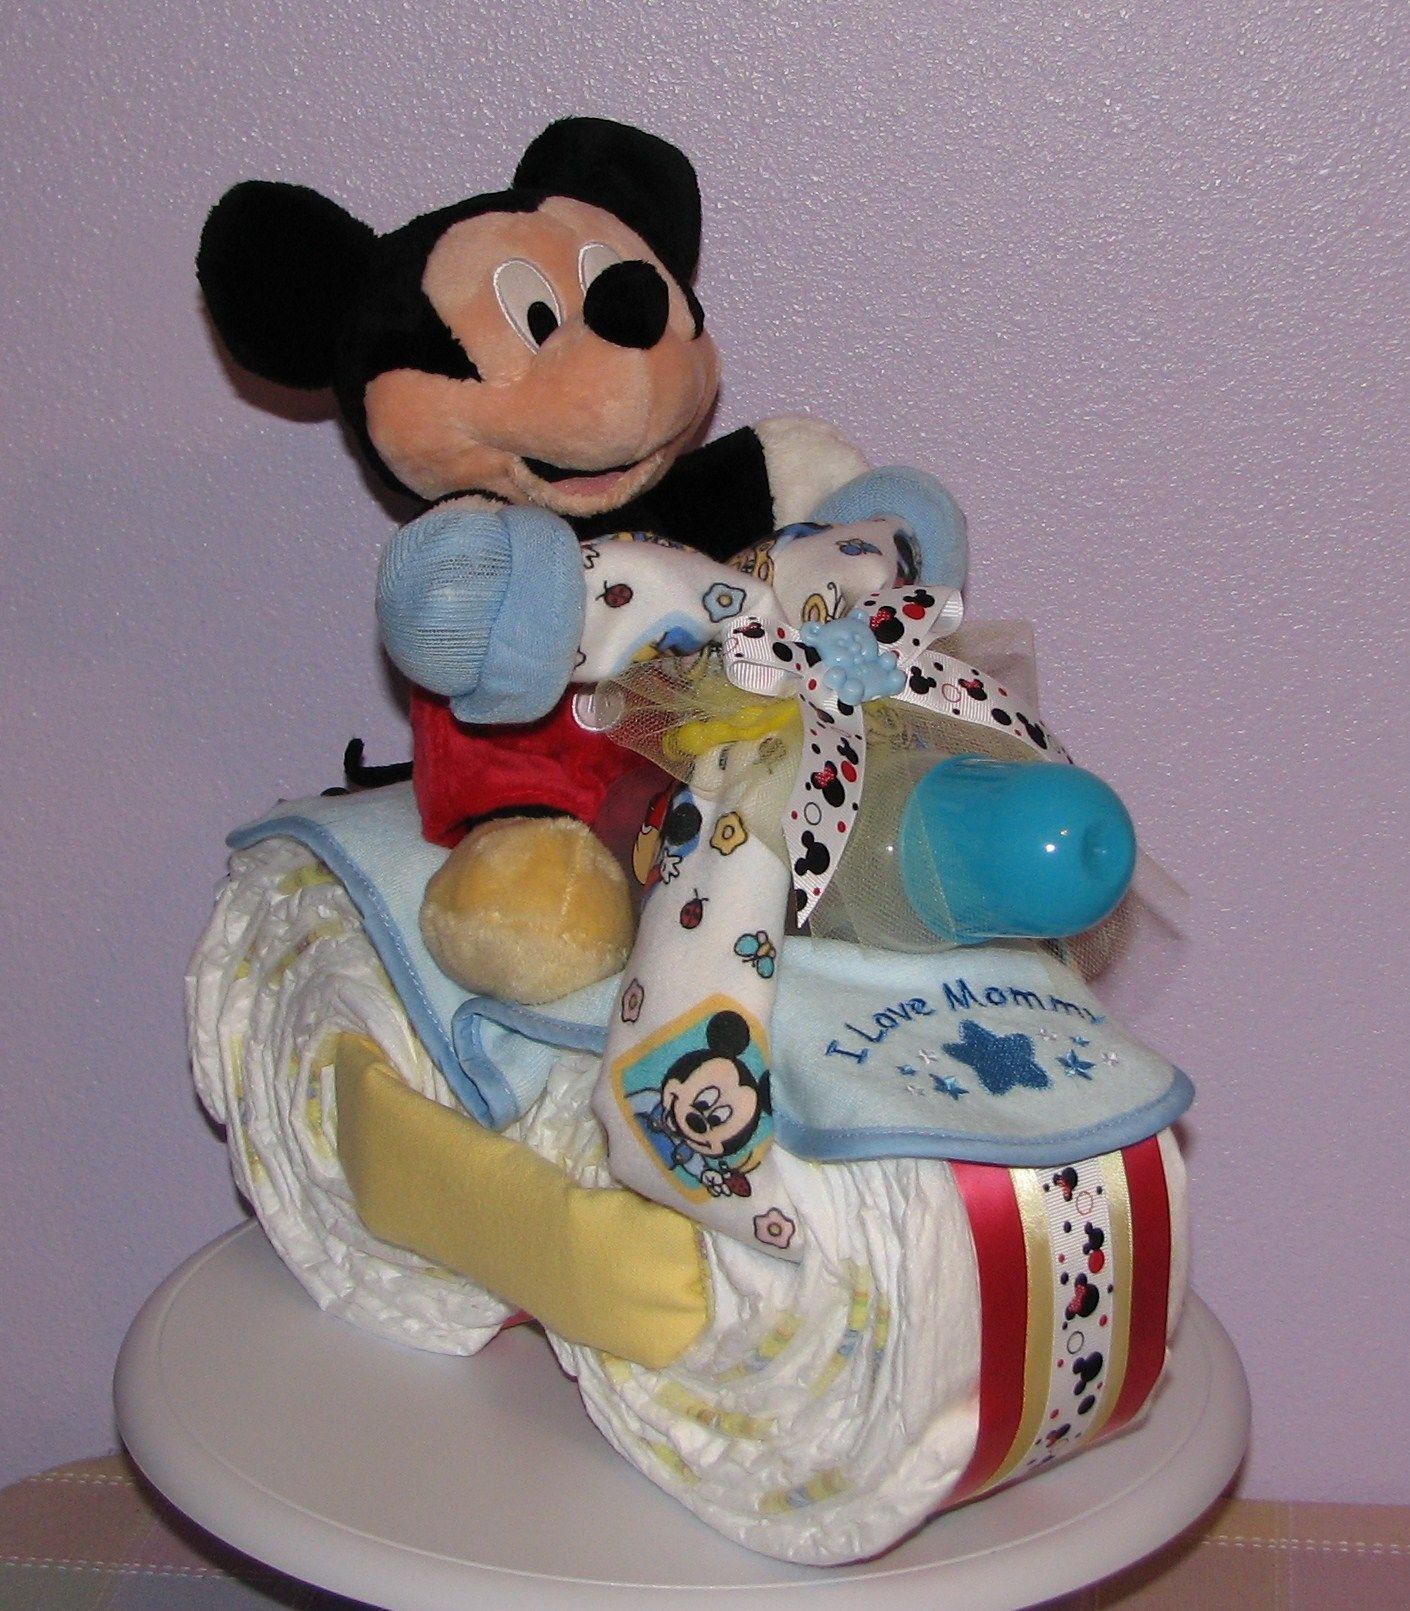 Mickey Mouse Baby Shower Cake Images : Mickey Mouse Diaper Cake Baby Shower Ideas ...